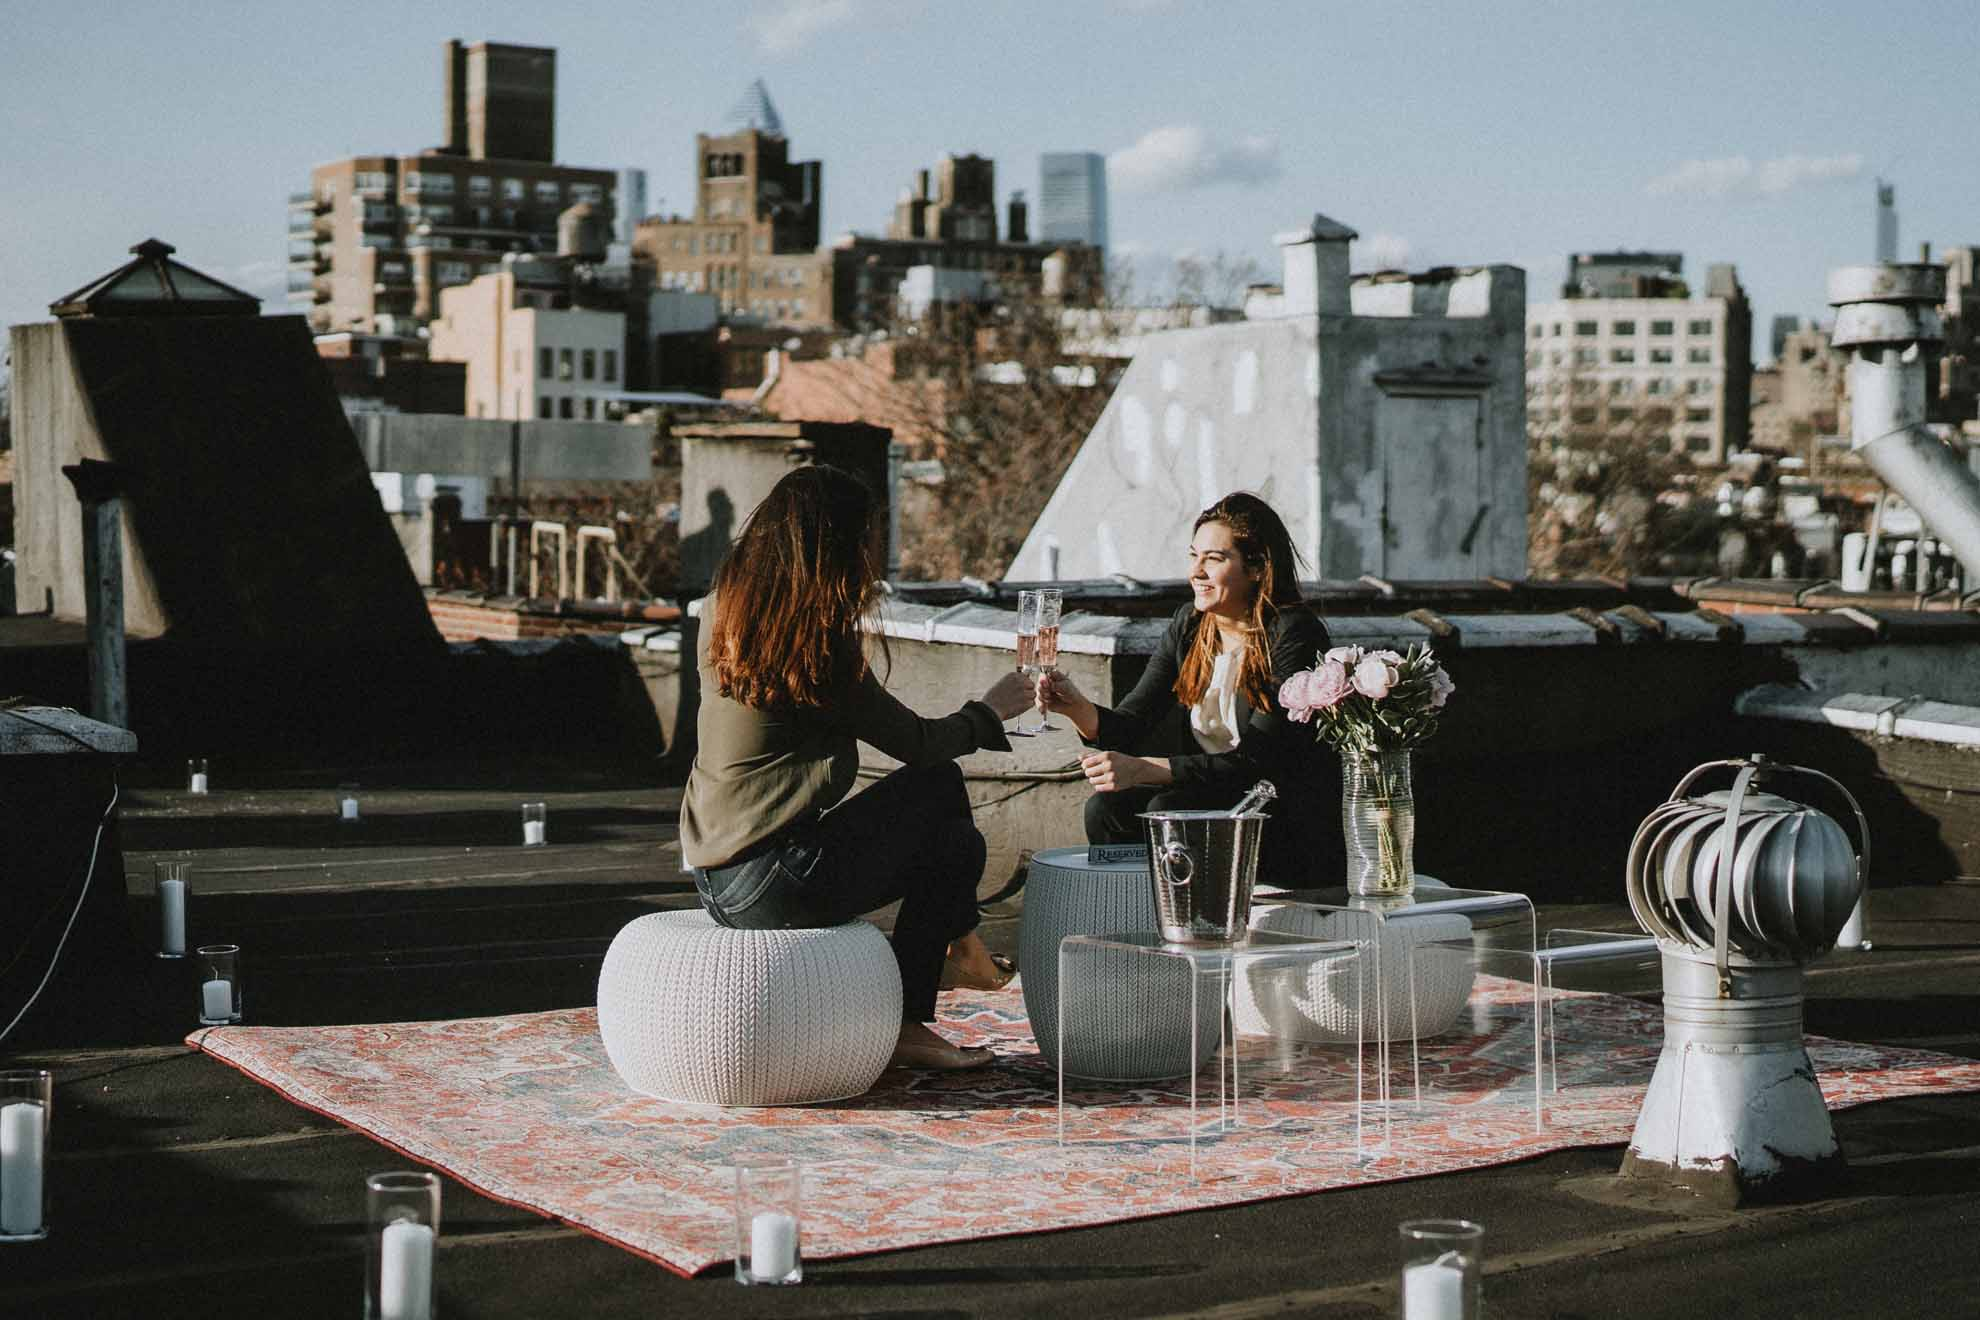 Lucie Bulois photography lesbian femme New York City USA rooftop engagement proposal Dancing With Her worldwide same-sex magazine